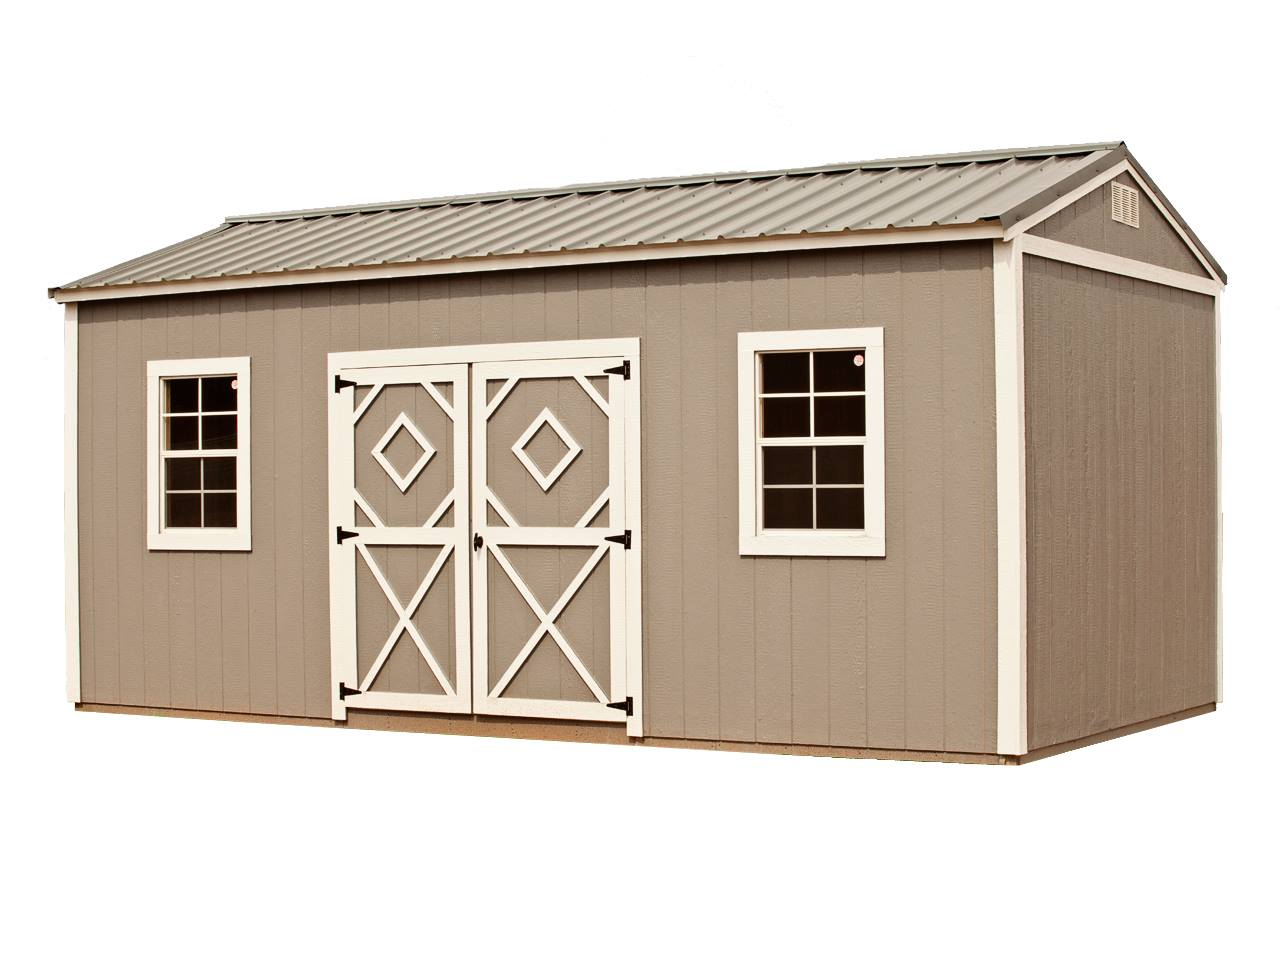 Express Storage Buildings Garden Shed   $55/Month For Sale In Greenville,  KY | Country Roads Auto Sales And Powersports (270) 338 2732